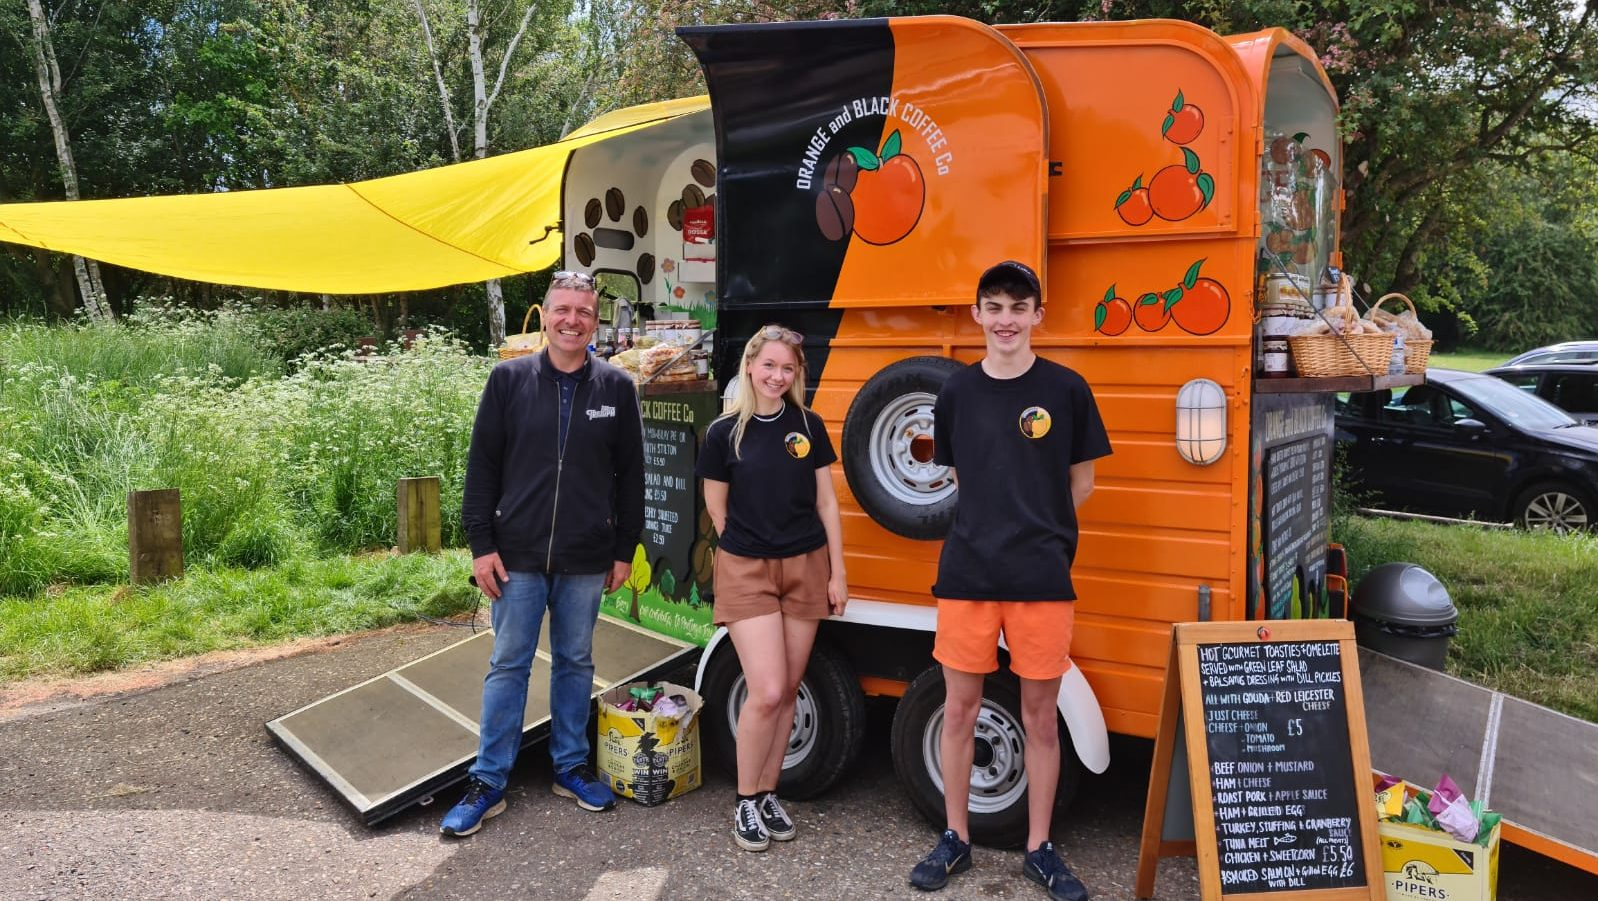 'Hetty' the converted horsebox is packed full of high quality gourmet Country Kitchen food and drinks!